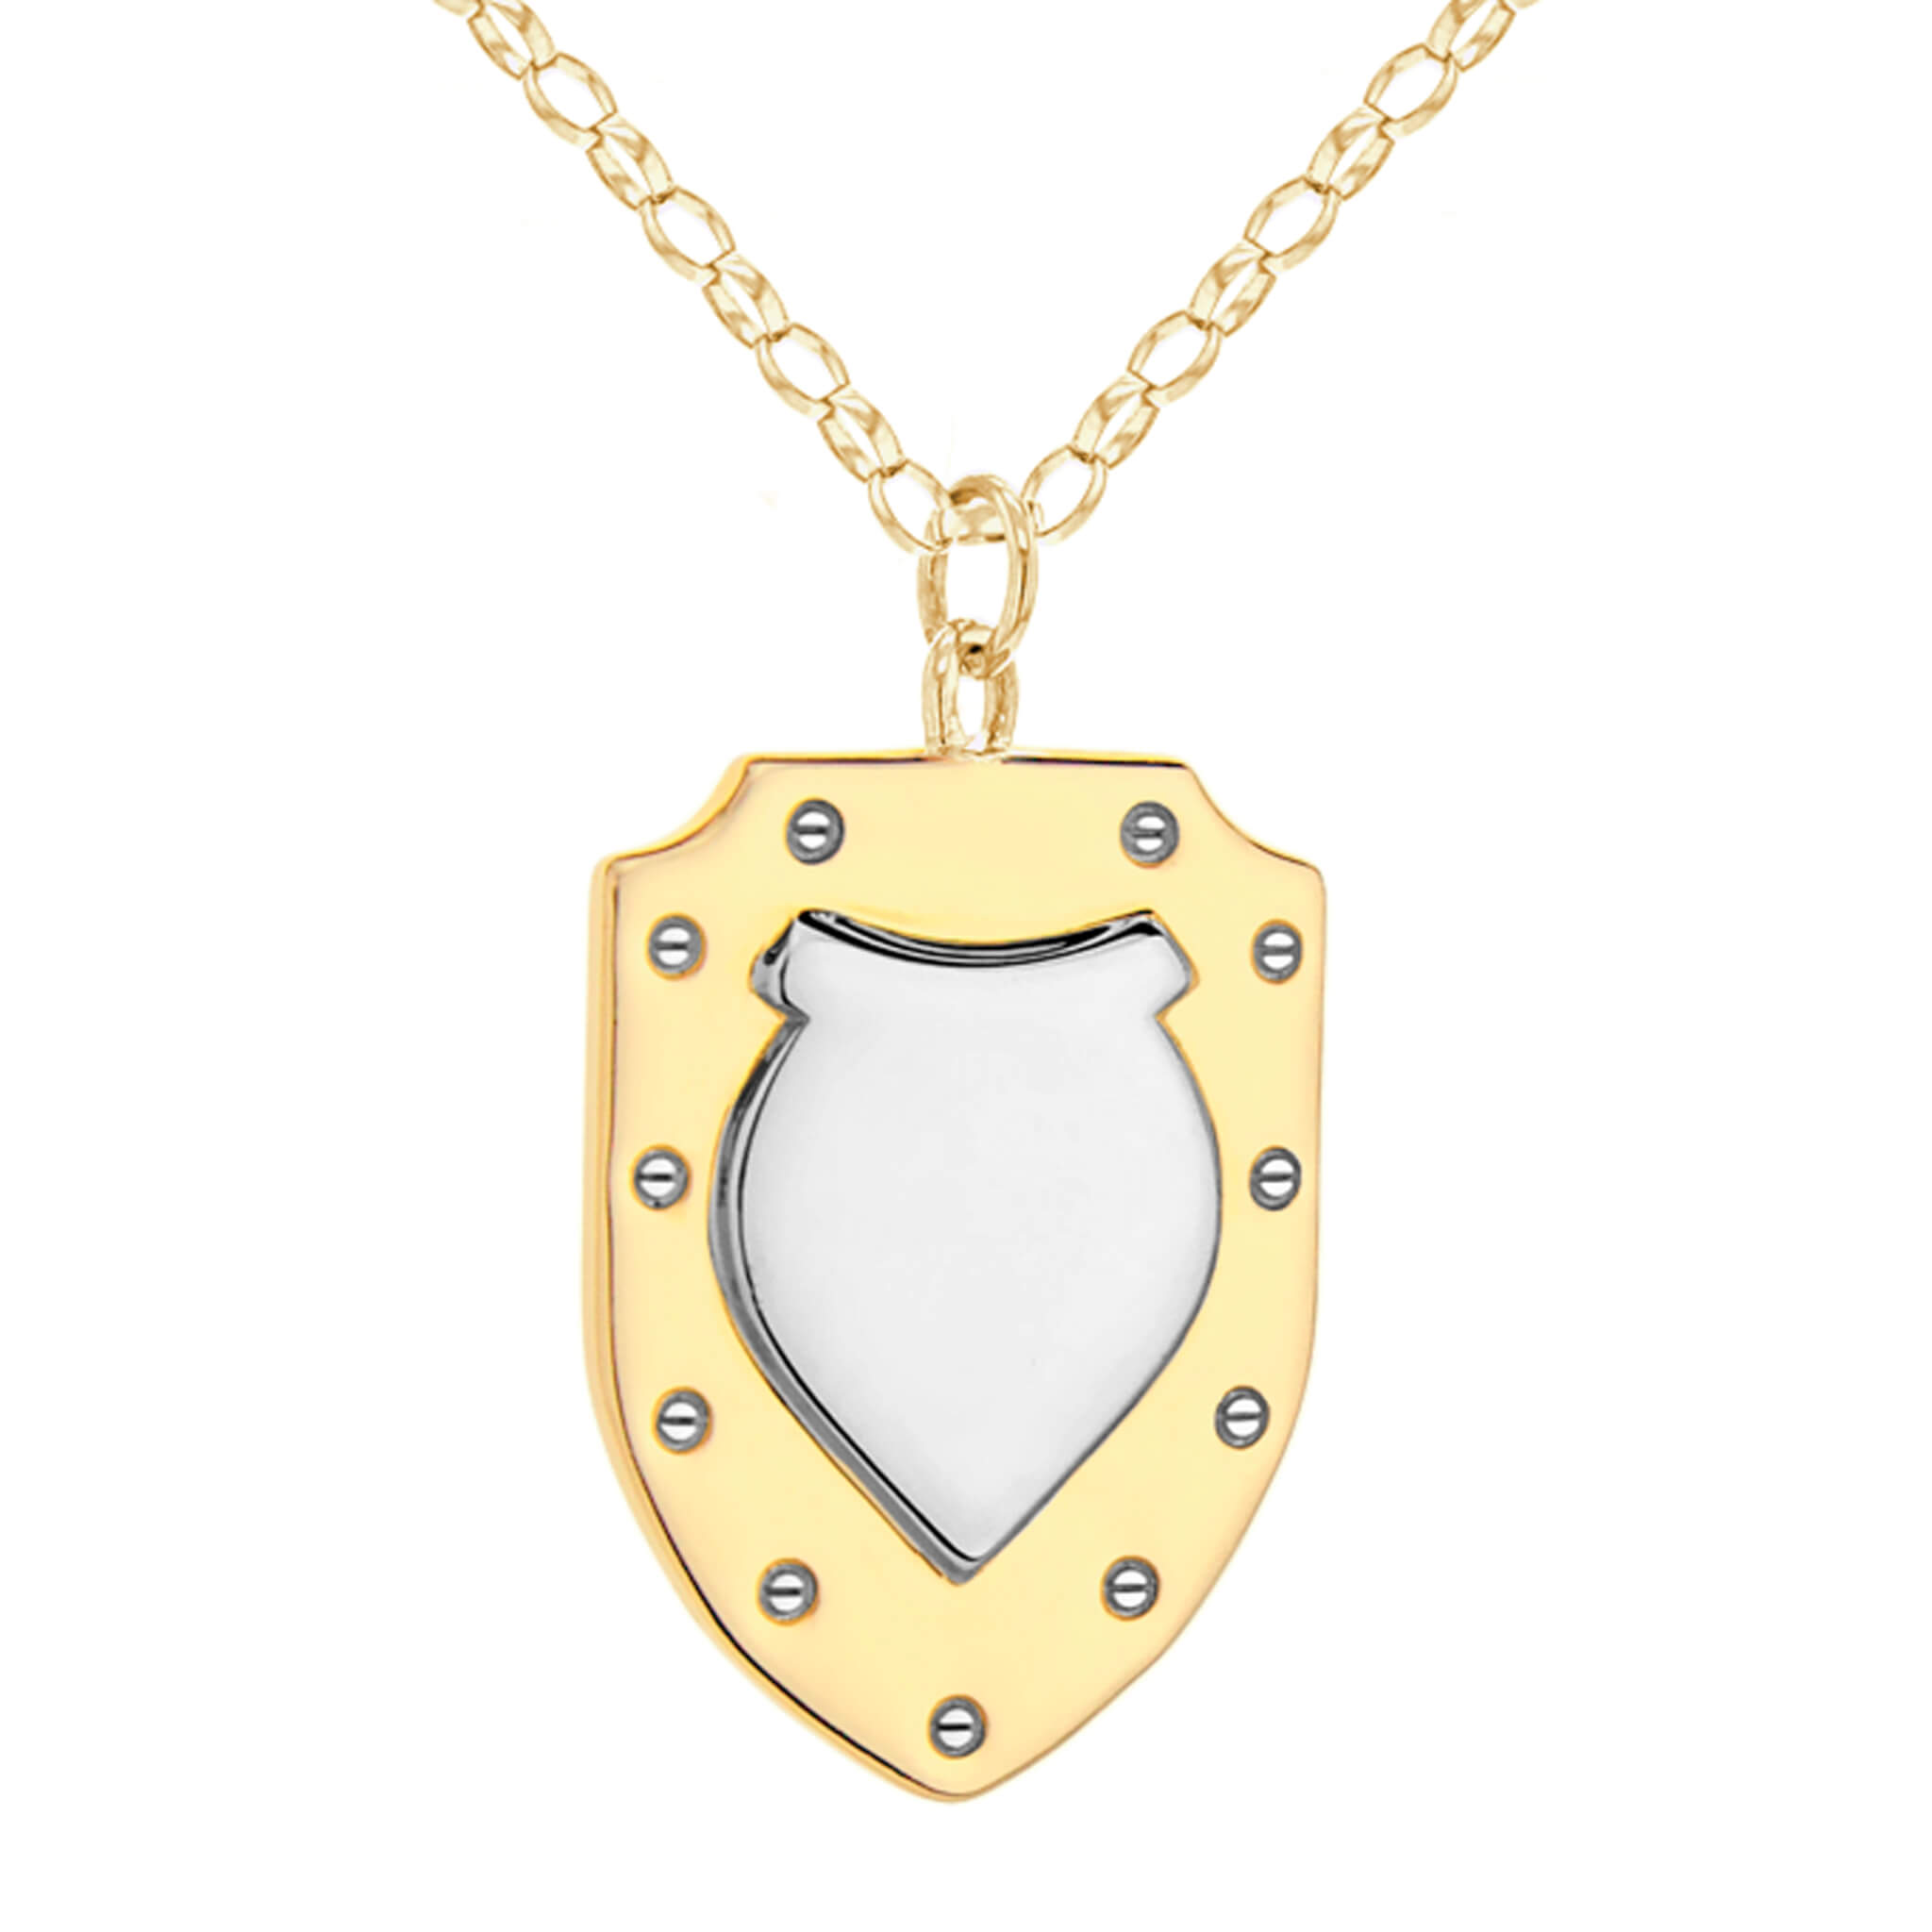 2 TONE GOLD/SILVER SHIELD – LARGE